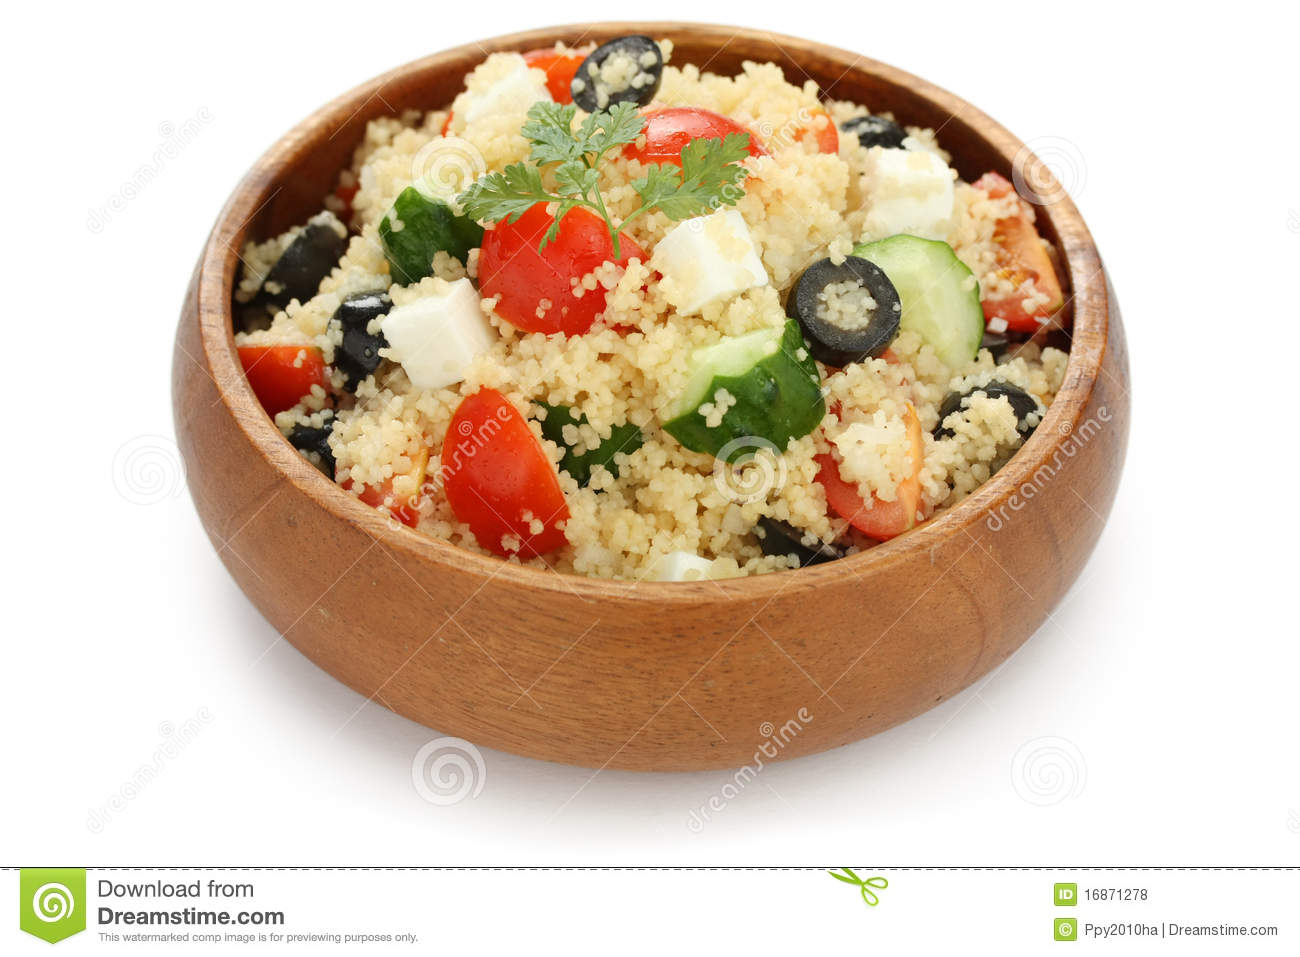 Cuscus clipart #9, Download drawings